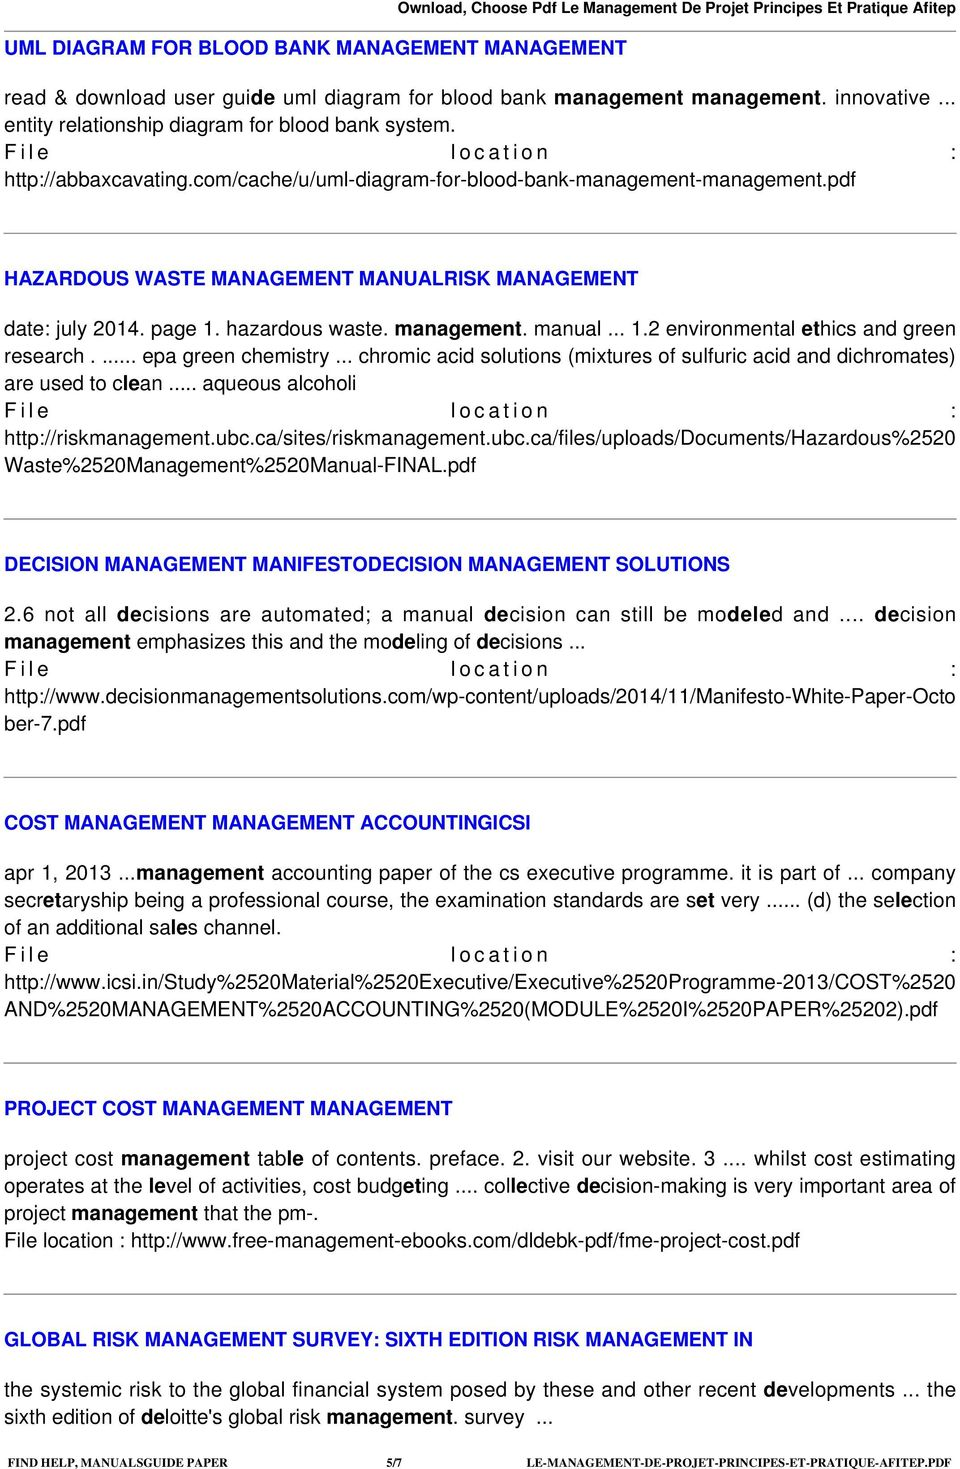 pdf HAZARDOUS WASTE MANAGEMENT MANUALRISK MANAGEMENT date: july 2014. page 1. hazardous waste. management. manual... 1.2 environmental ethics and green research.... epa green chemistry.